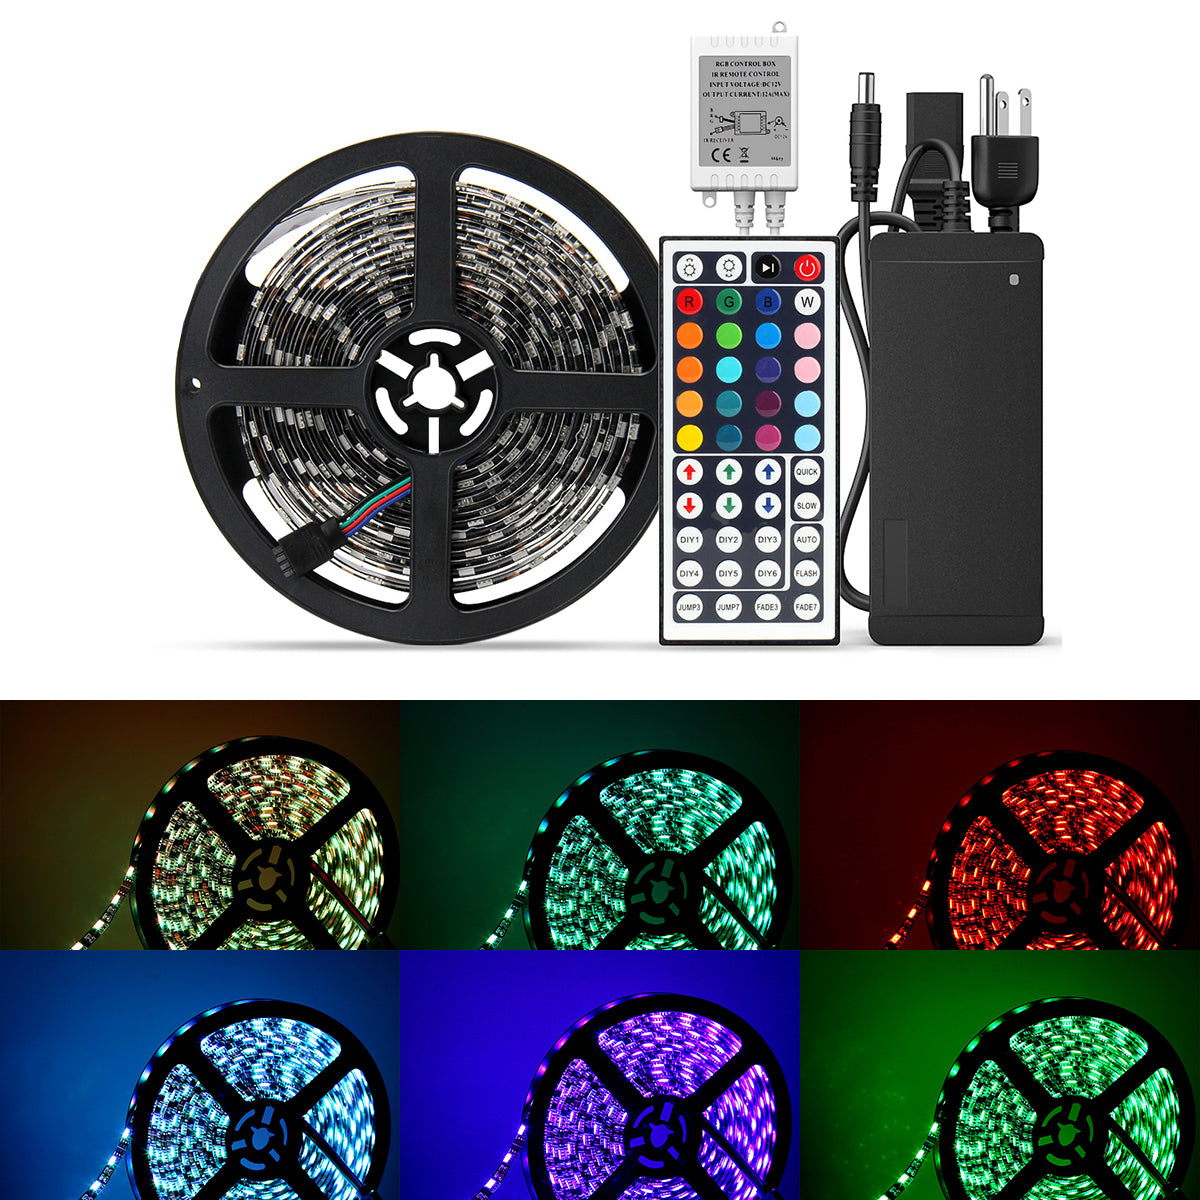 SUPERNIGHT Waterproof 5050 LED Strip Light - Black PCB 16.4ft 300leds Rope Lights with Remote Controller and 12V Power Adapter, Festival Lighting for Bedroom,Kitchen,Boat,TV,Indoor Decoration